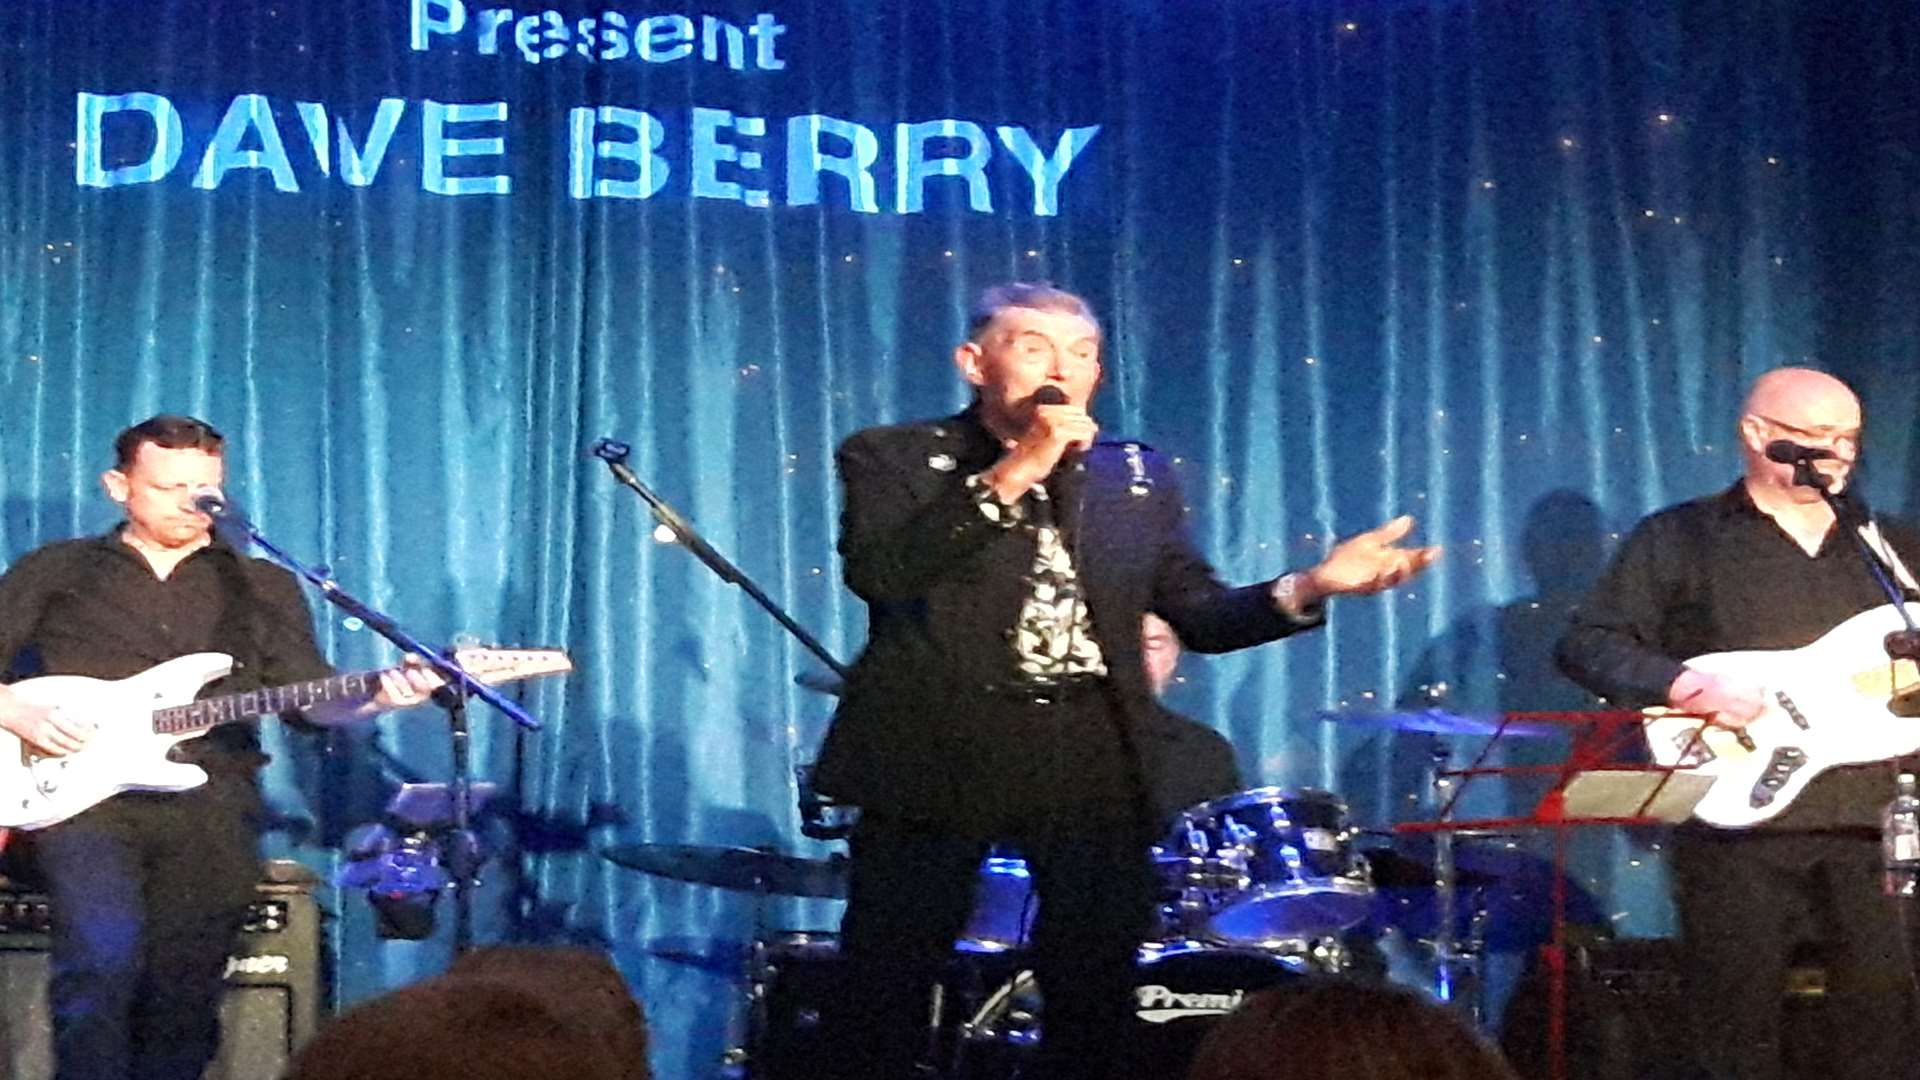 Dave Berry at the Criterion Theatre, Blue Town